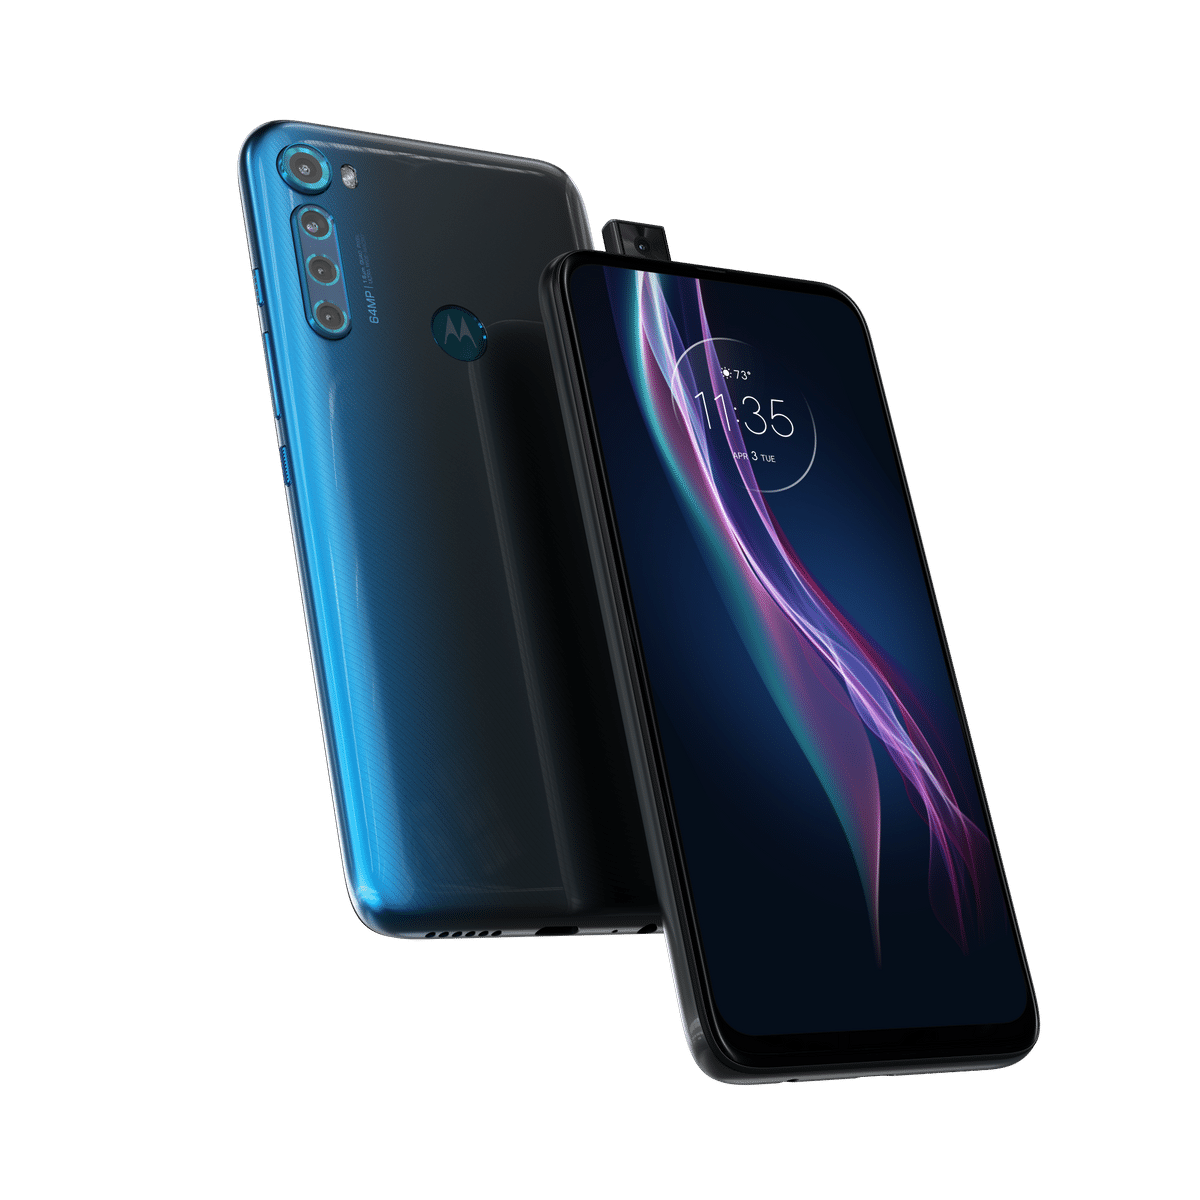 The Motorola One Fusion Plus is the second smartphone from the brand after One Hyper to offer a pop-up selfie camera